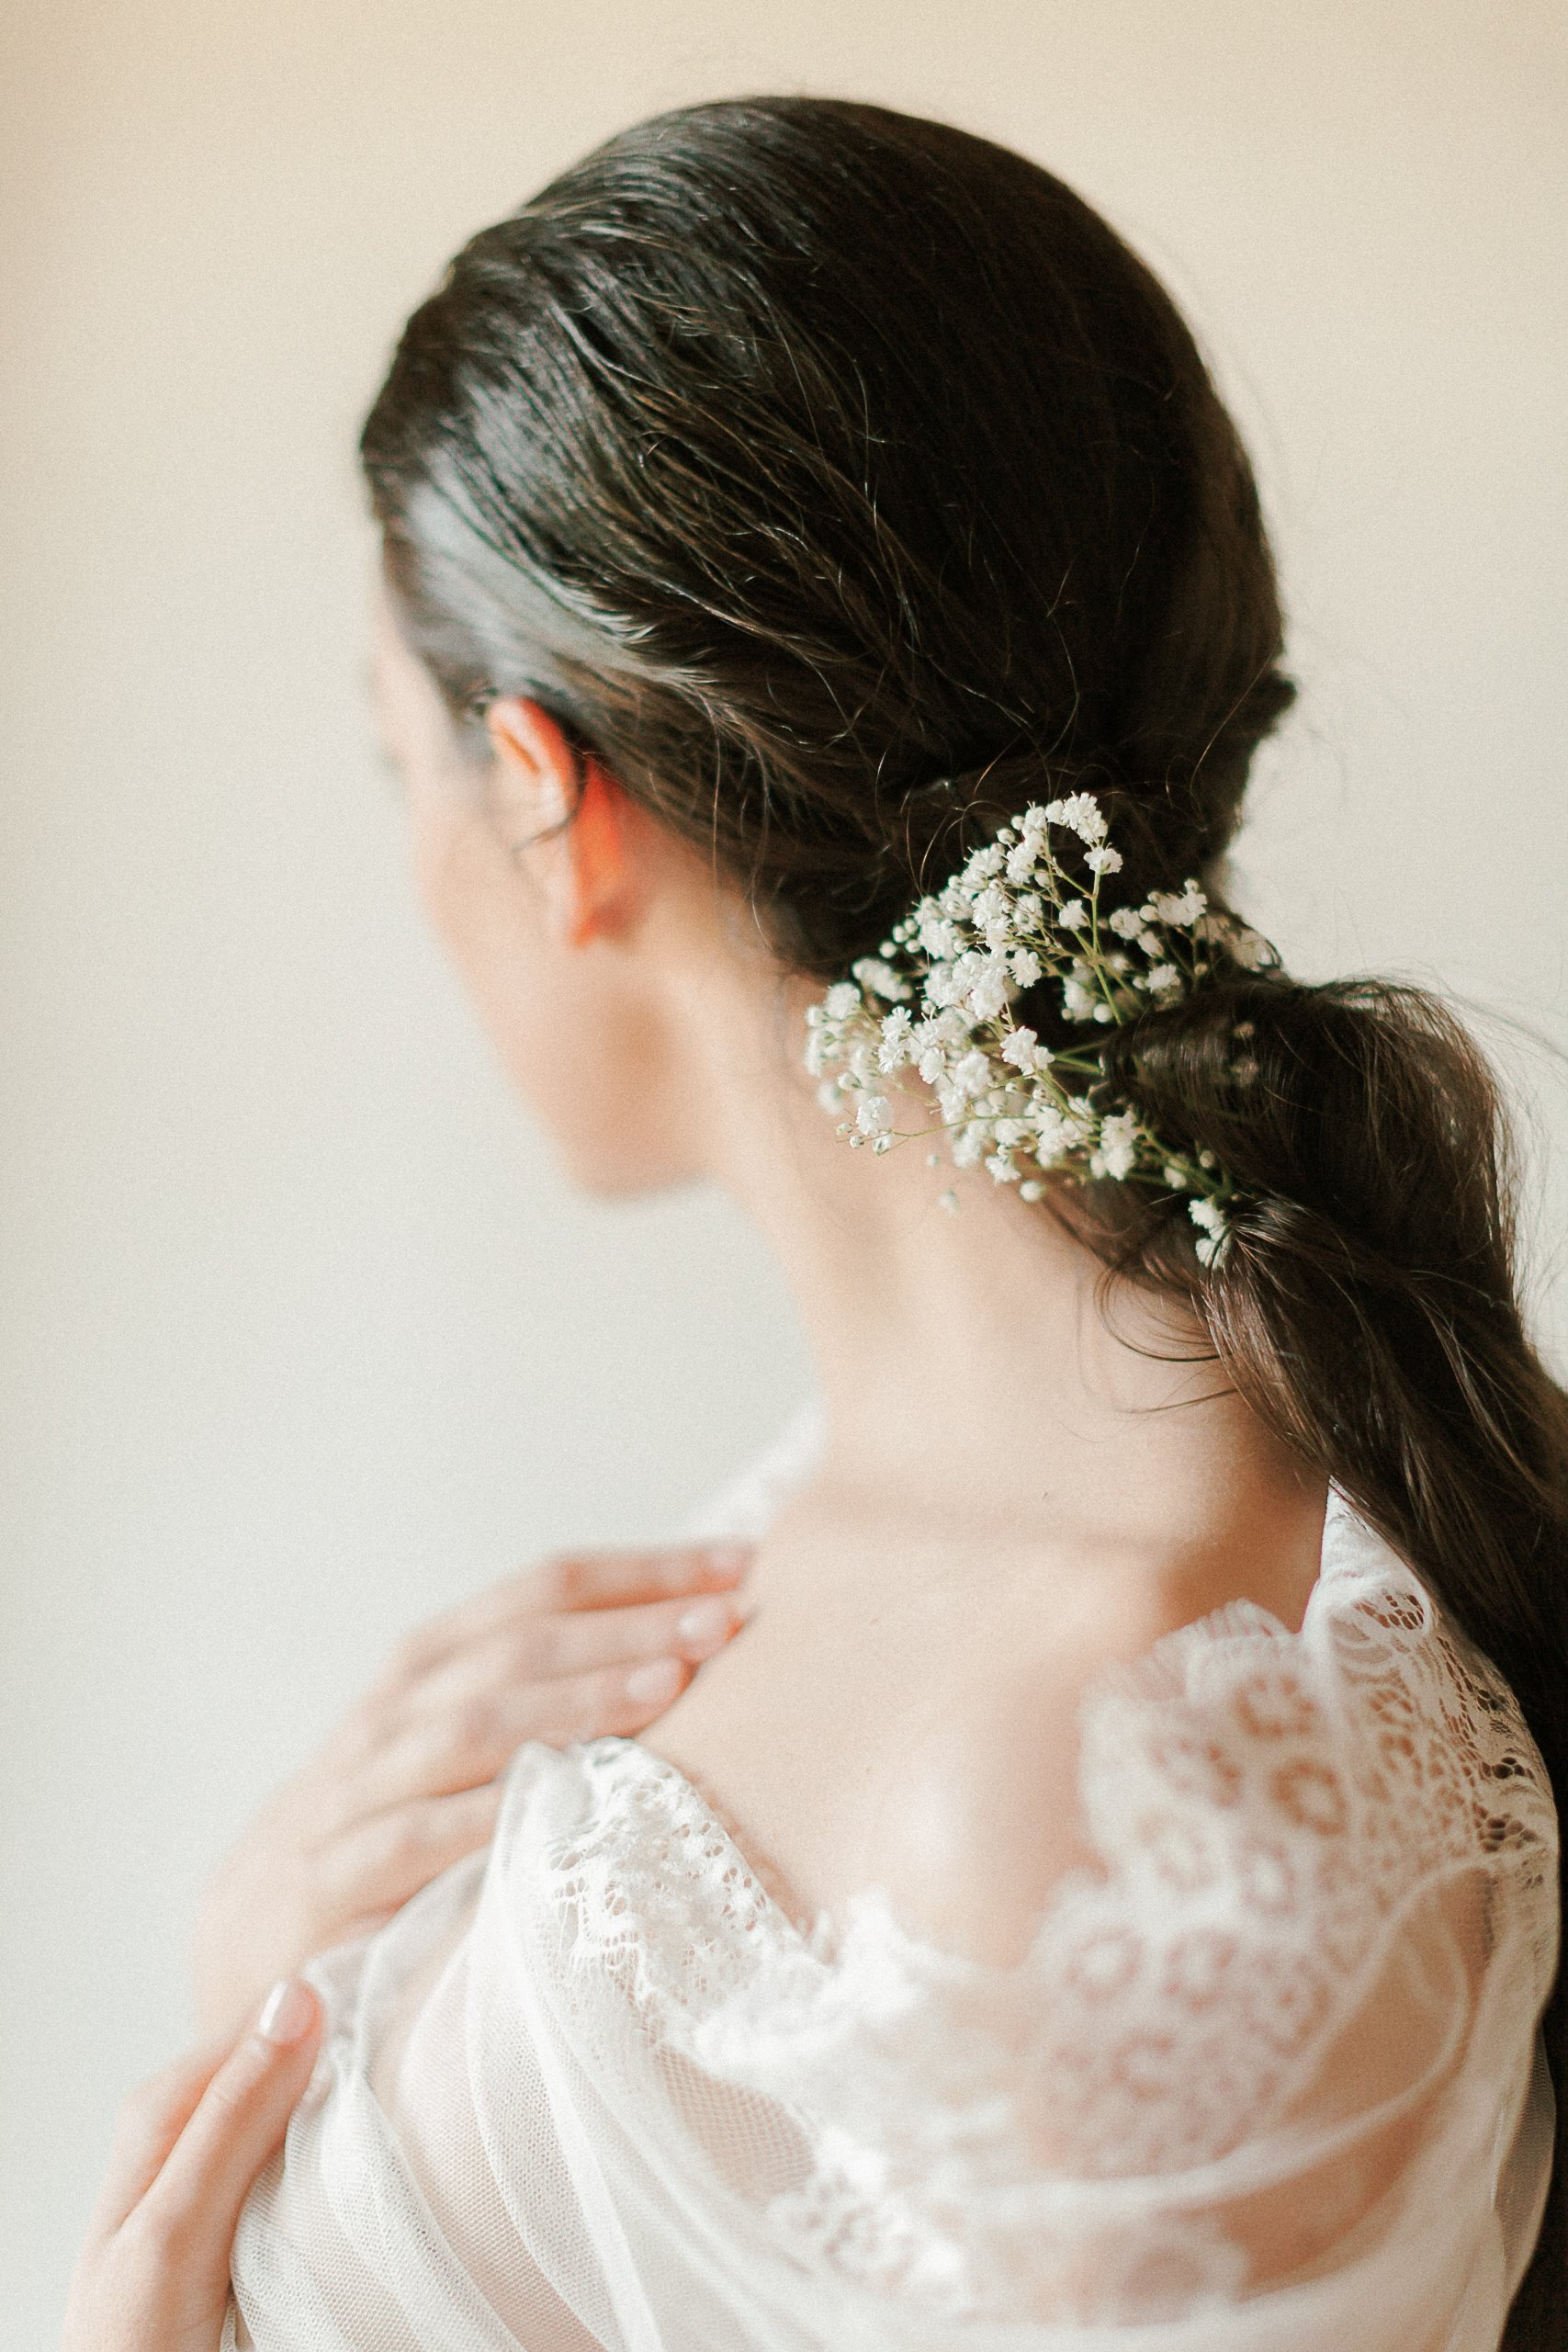 Close up of model wearing little white flowers on her hair for a bridal boudoir session